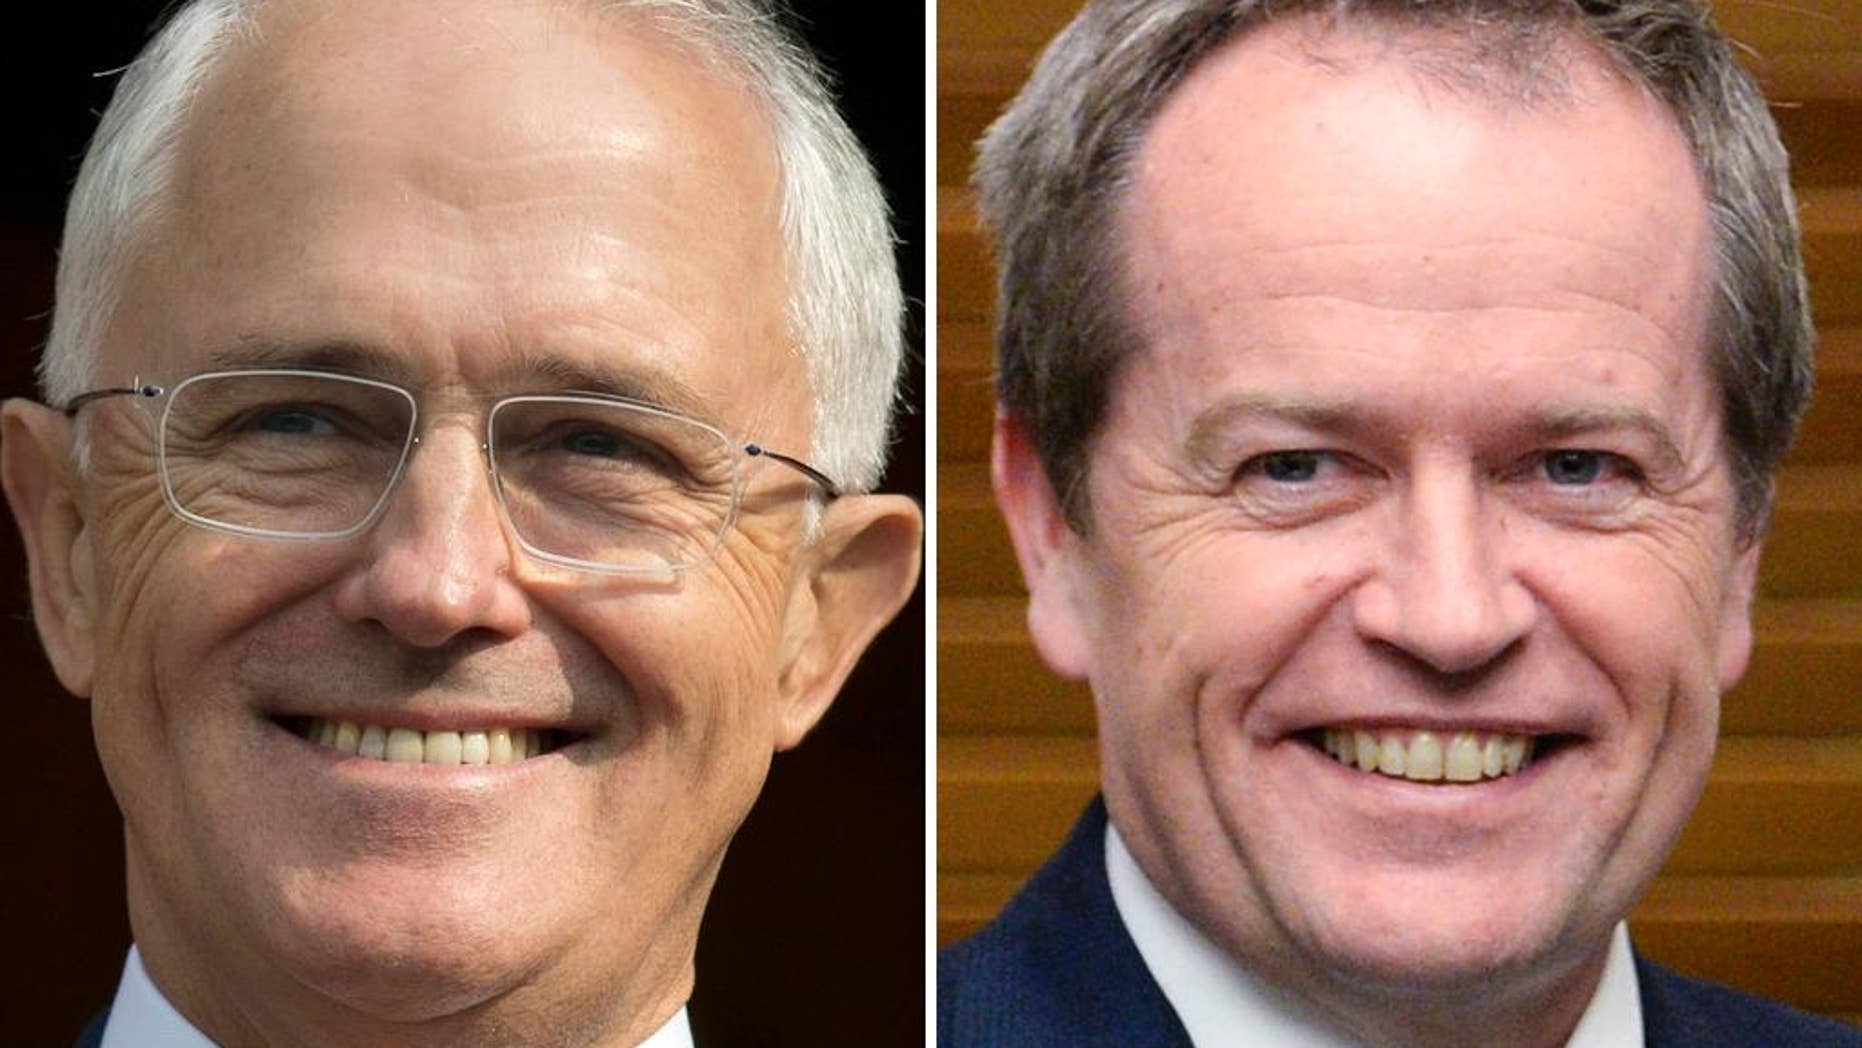 """FILE - This combination of file photos from April 15, 2016, and July 8, 2014, shows Australian Prime Minister Malcolm Turnbull, left, and Australian opposition leader Bill Shorten. Australian independent Sen. Nick Xenophon compared his country's contest to the widely popular 1990s American sitcom 'Seinfeld,' known as a """"show about nothing."""" In his comparison he says, """"This is almost a 'Seinfeld' election _ it's an election about not much at all.""""  (AP Photo/Files)"""